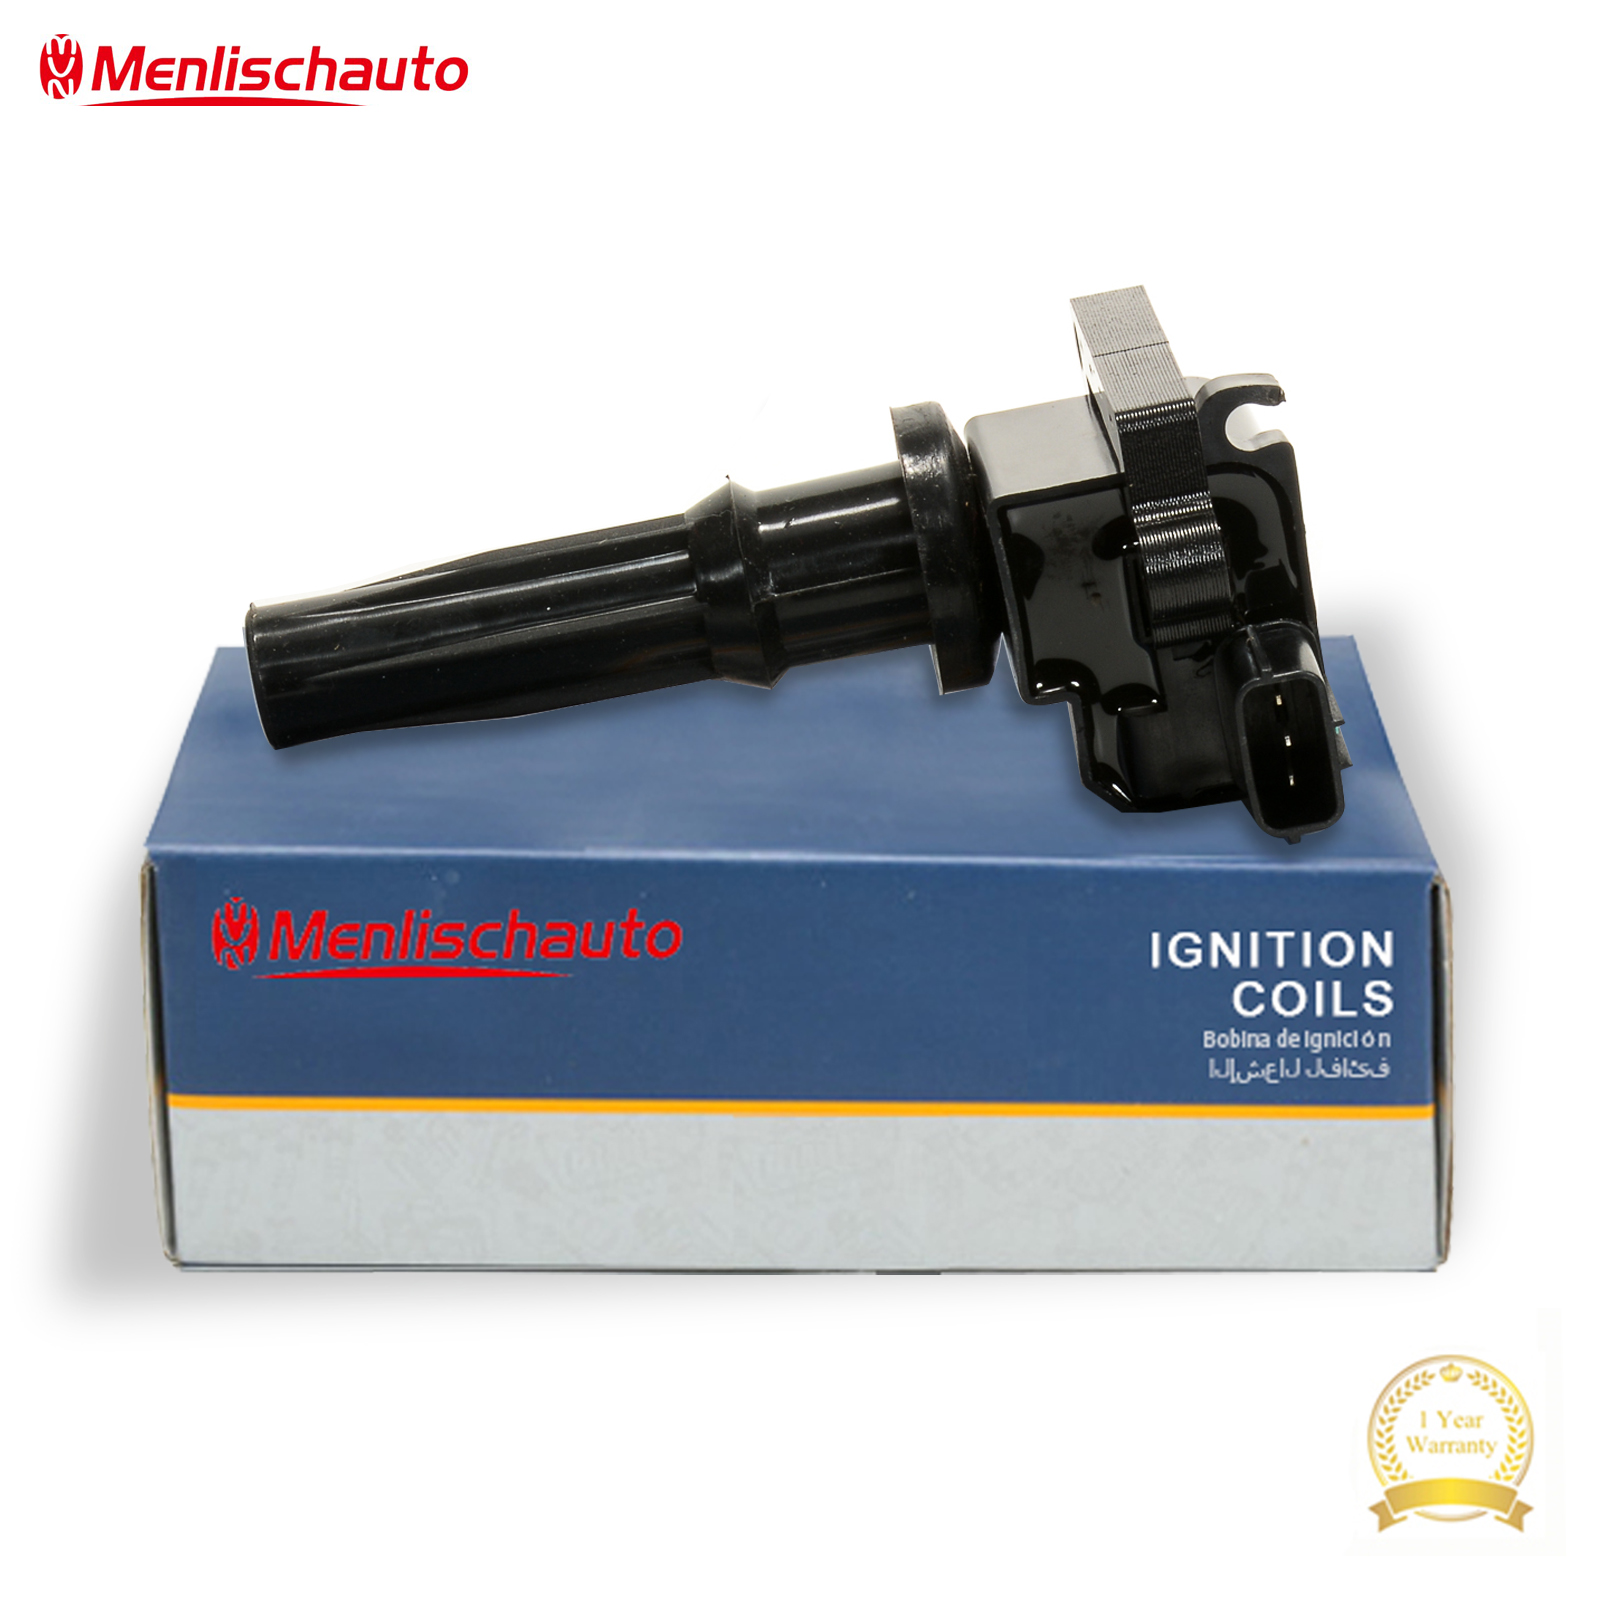 New OEM 27301 38020 Ignition Coil for Santa fe 01 04 Sonata 99 05 2 4L in Ignition Coil from Automobiles Motorcycles